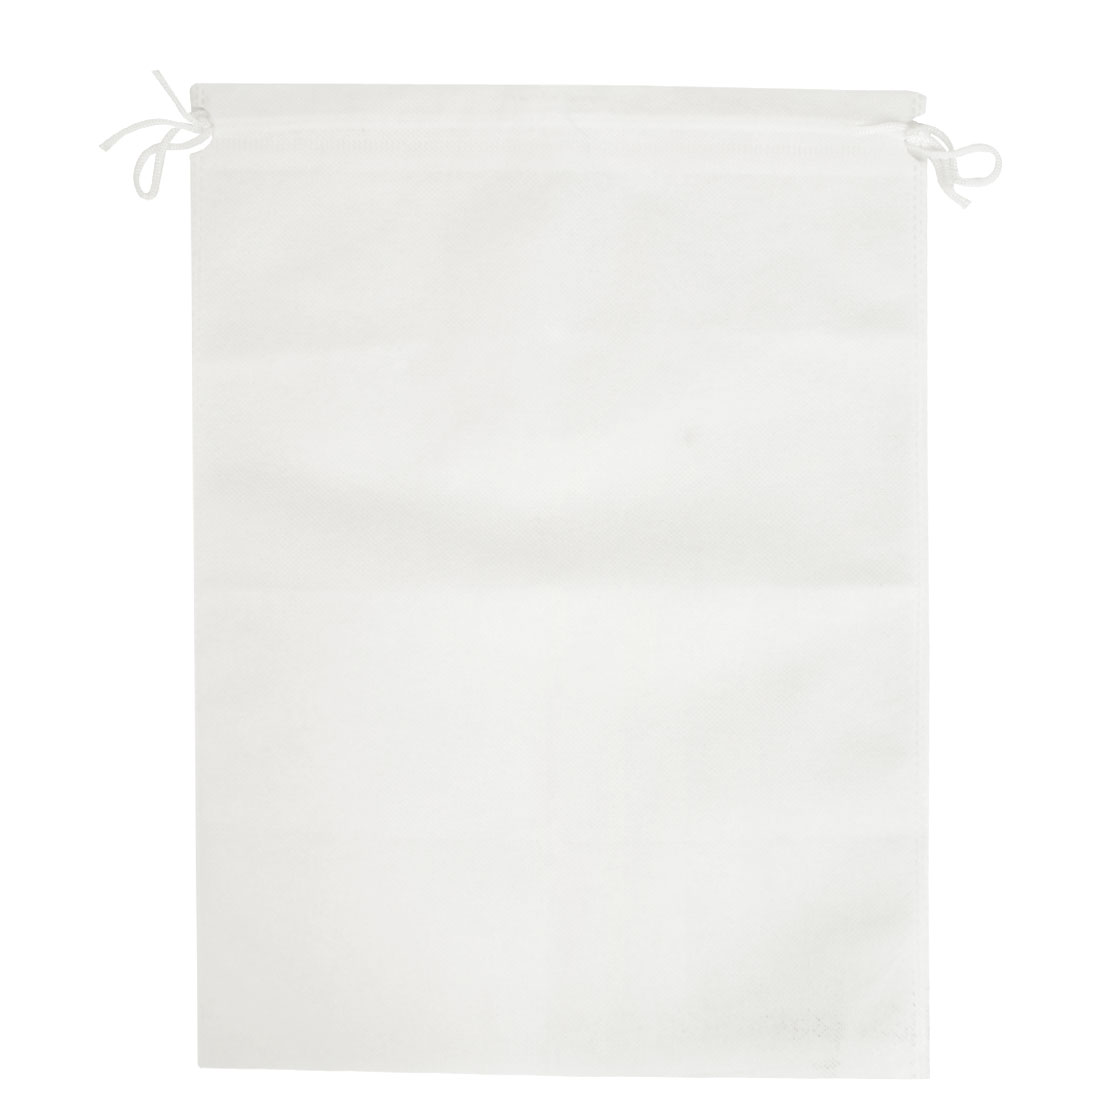 "Household Clothing Dust Cover Storage Drawstring Bags White 20""x 16"""